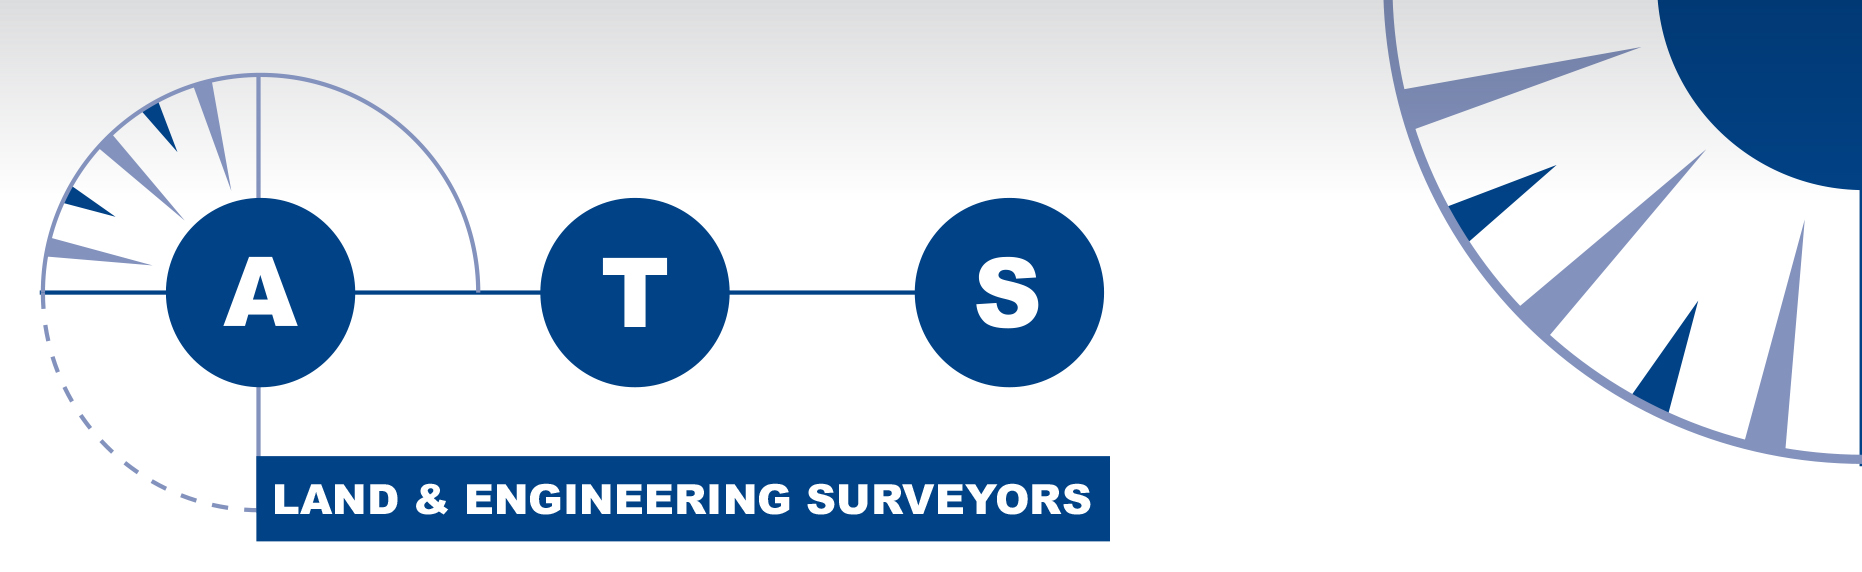 A.T.S. LAND & ENGINEERING SURVEYORS – COMMERCIAL & RESIDENTIAL